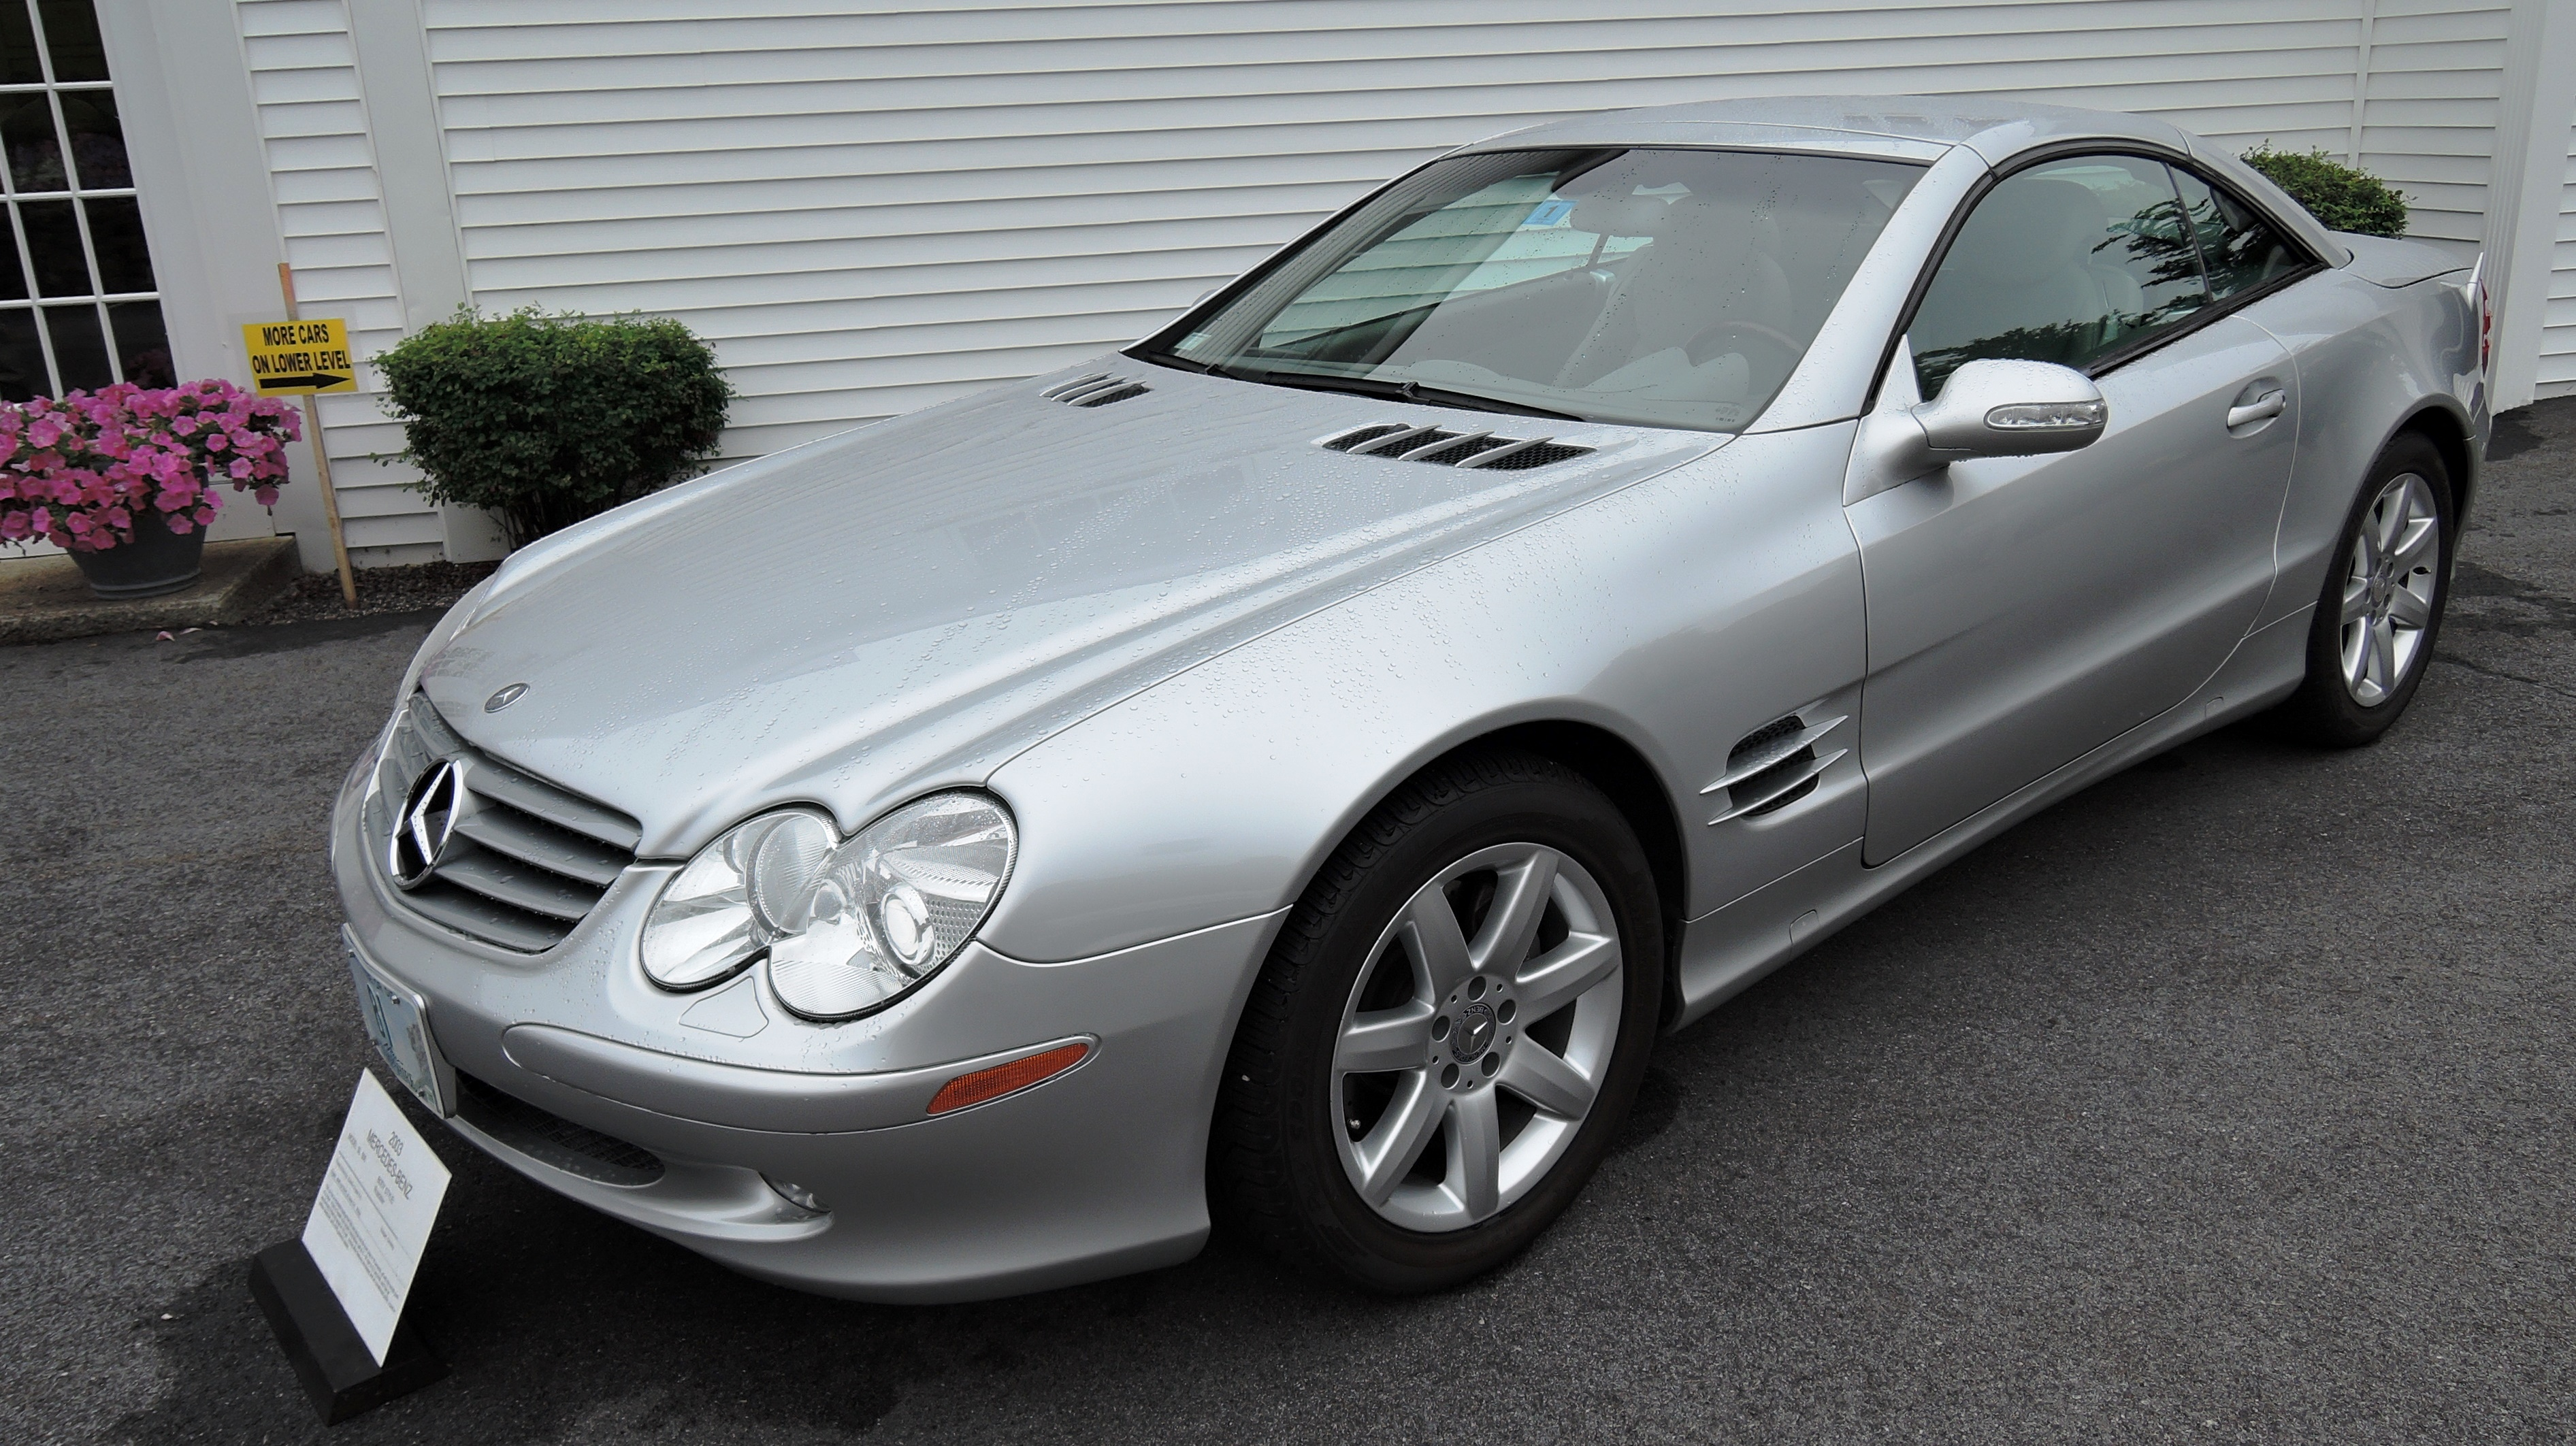 silver 2003 Mercedes Benz 500 SL Roadster with retractable hardtop - bahre car collection